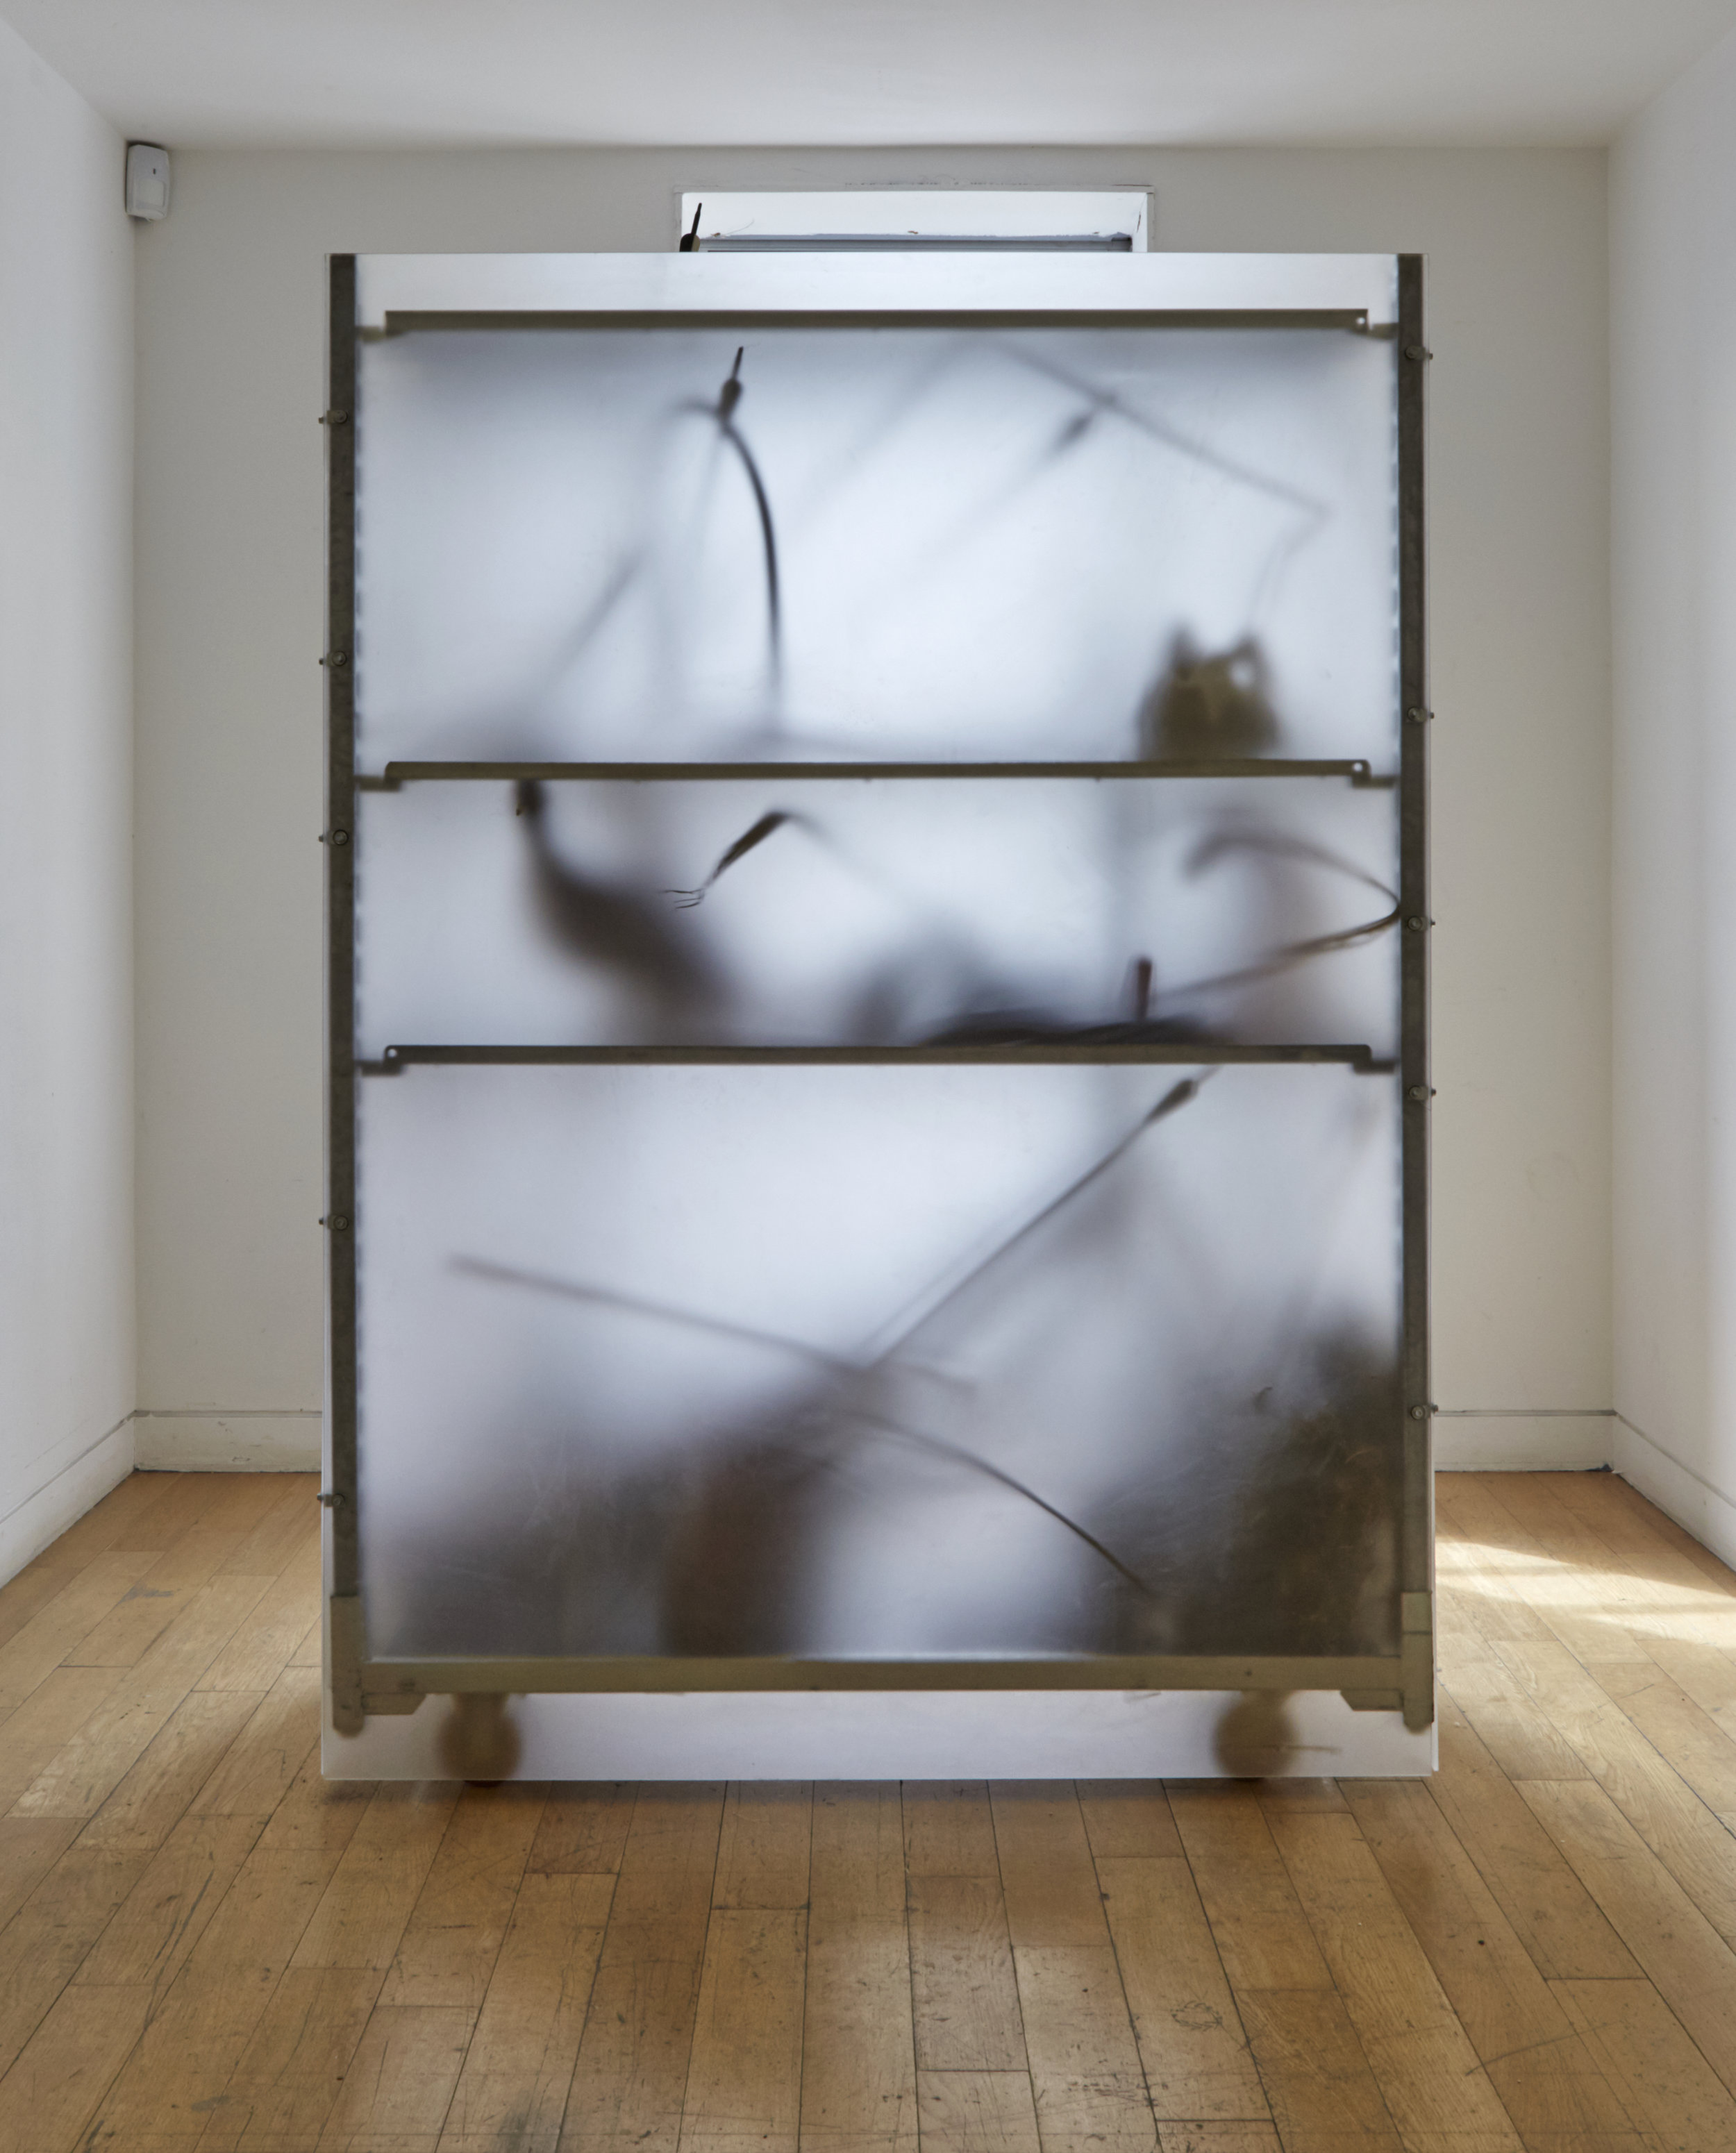 'fiction', steel shelf, casters, perspex, concealed objects